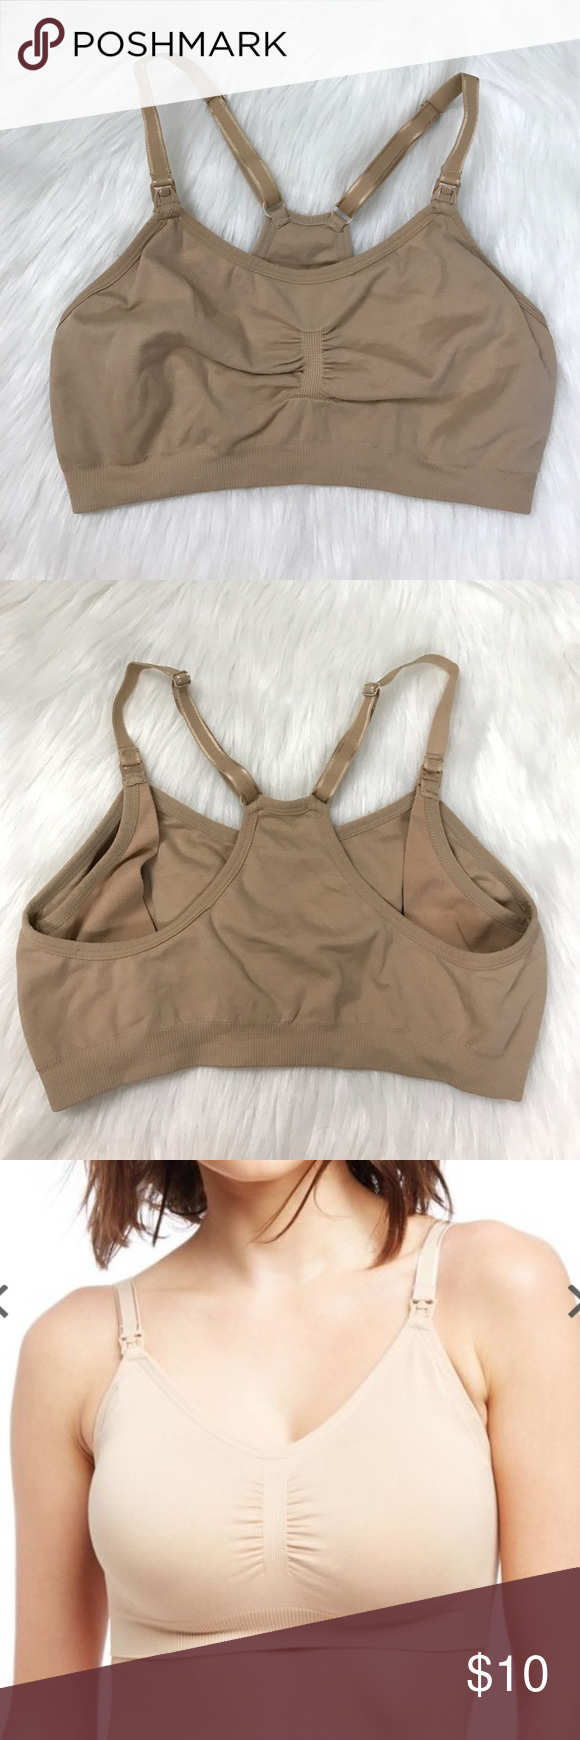 Motherhood Maternity Seamless Nursing Bra A-D Ideal for cup sizes A-D. Gently used, This is my favorite Nursing Bra! Light weight and feels like nothing on. Includes adjustable straps. Motherhood Maternity Intimates & Sleepwear Bras